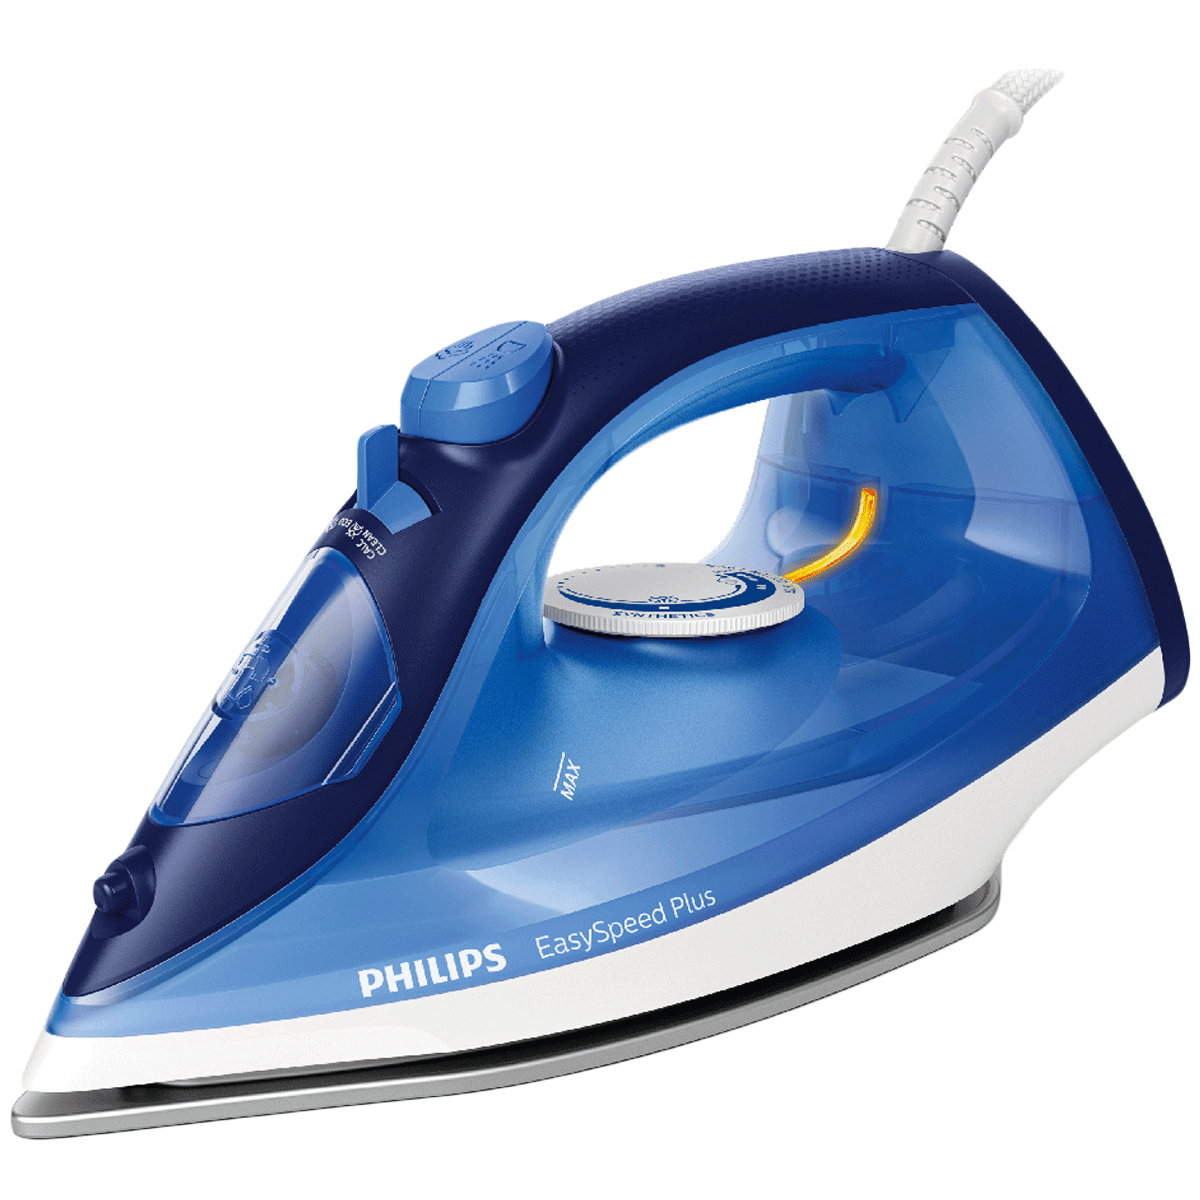 Philips EasySpeed Plus 2200 Watts 270ml Steam Iron (Durable Ceramic Soleplate, GC2145/20, Blue)